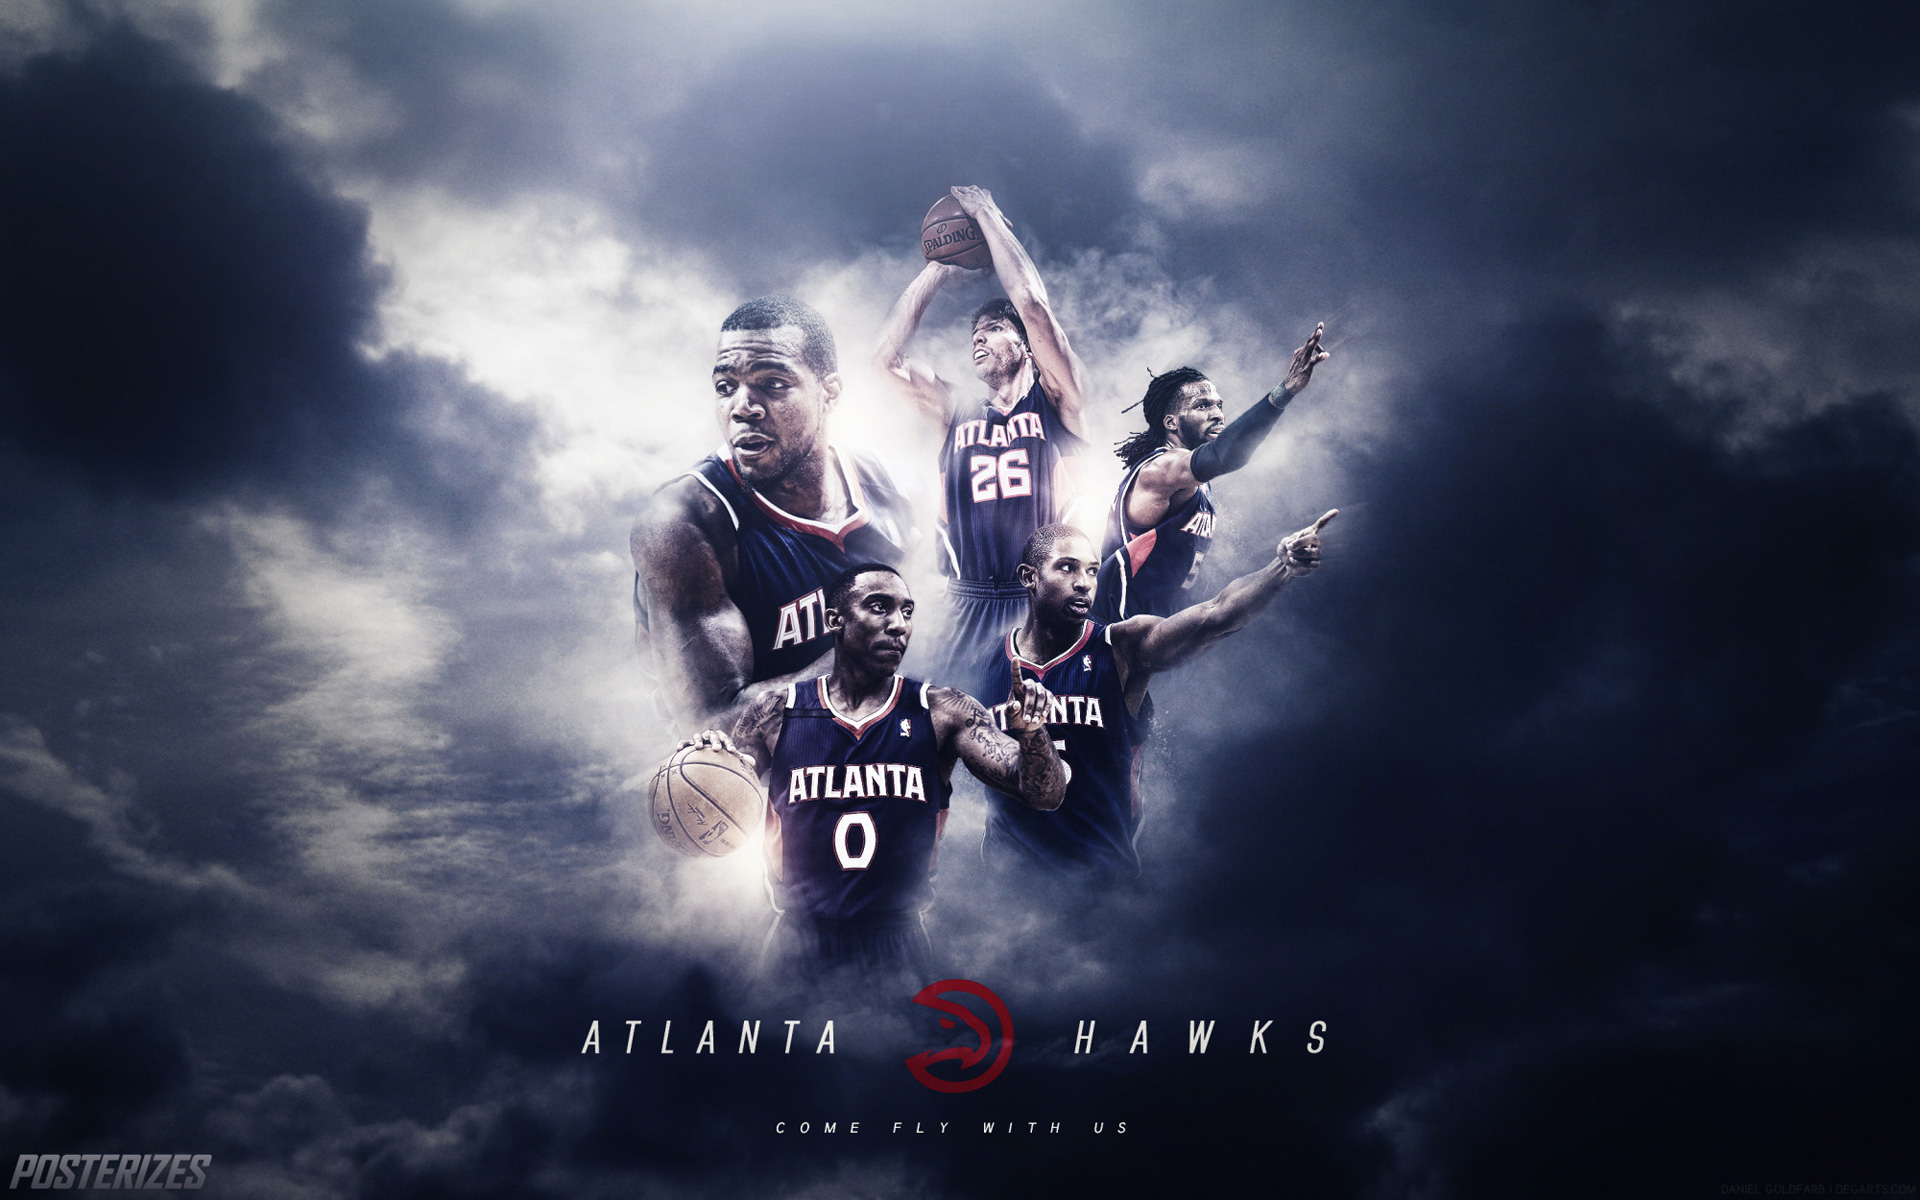 Atlanta Hawks 2015 1920x1200 Wallpaper